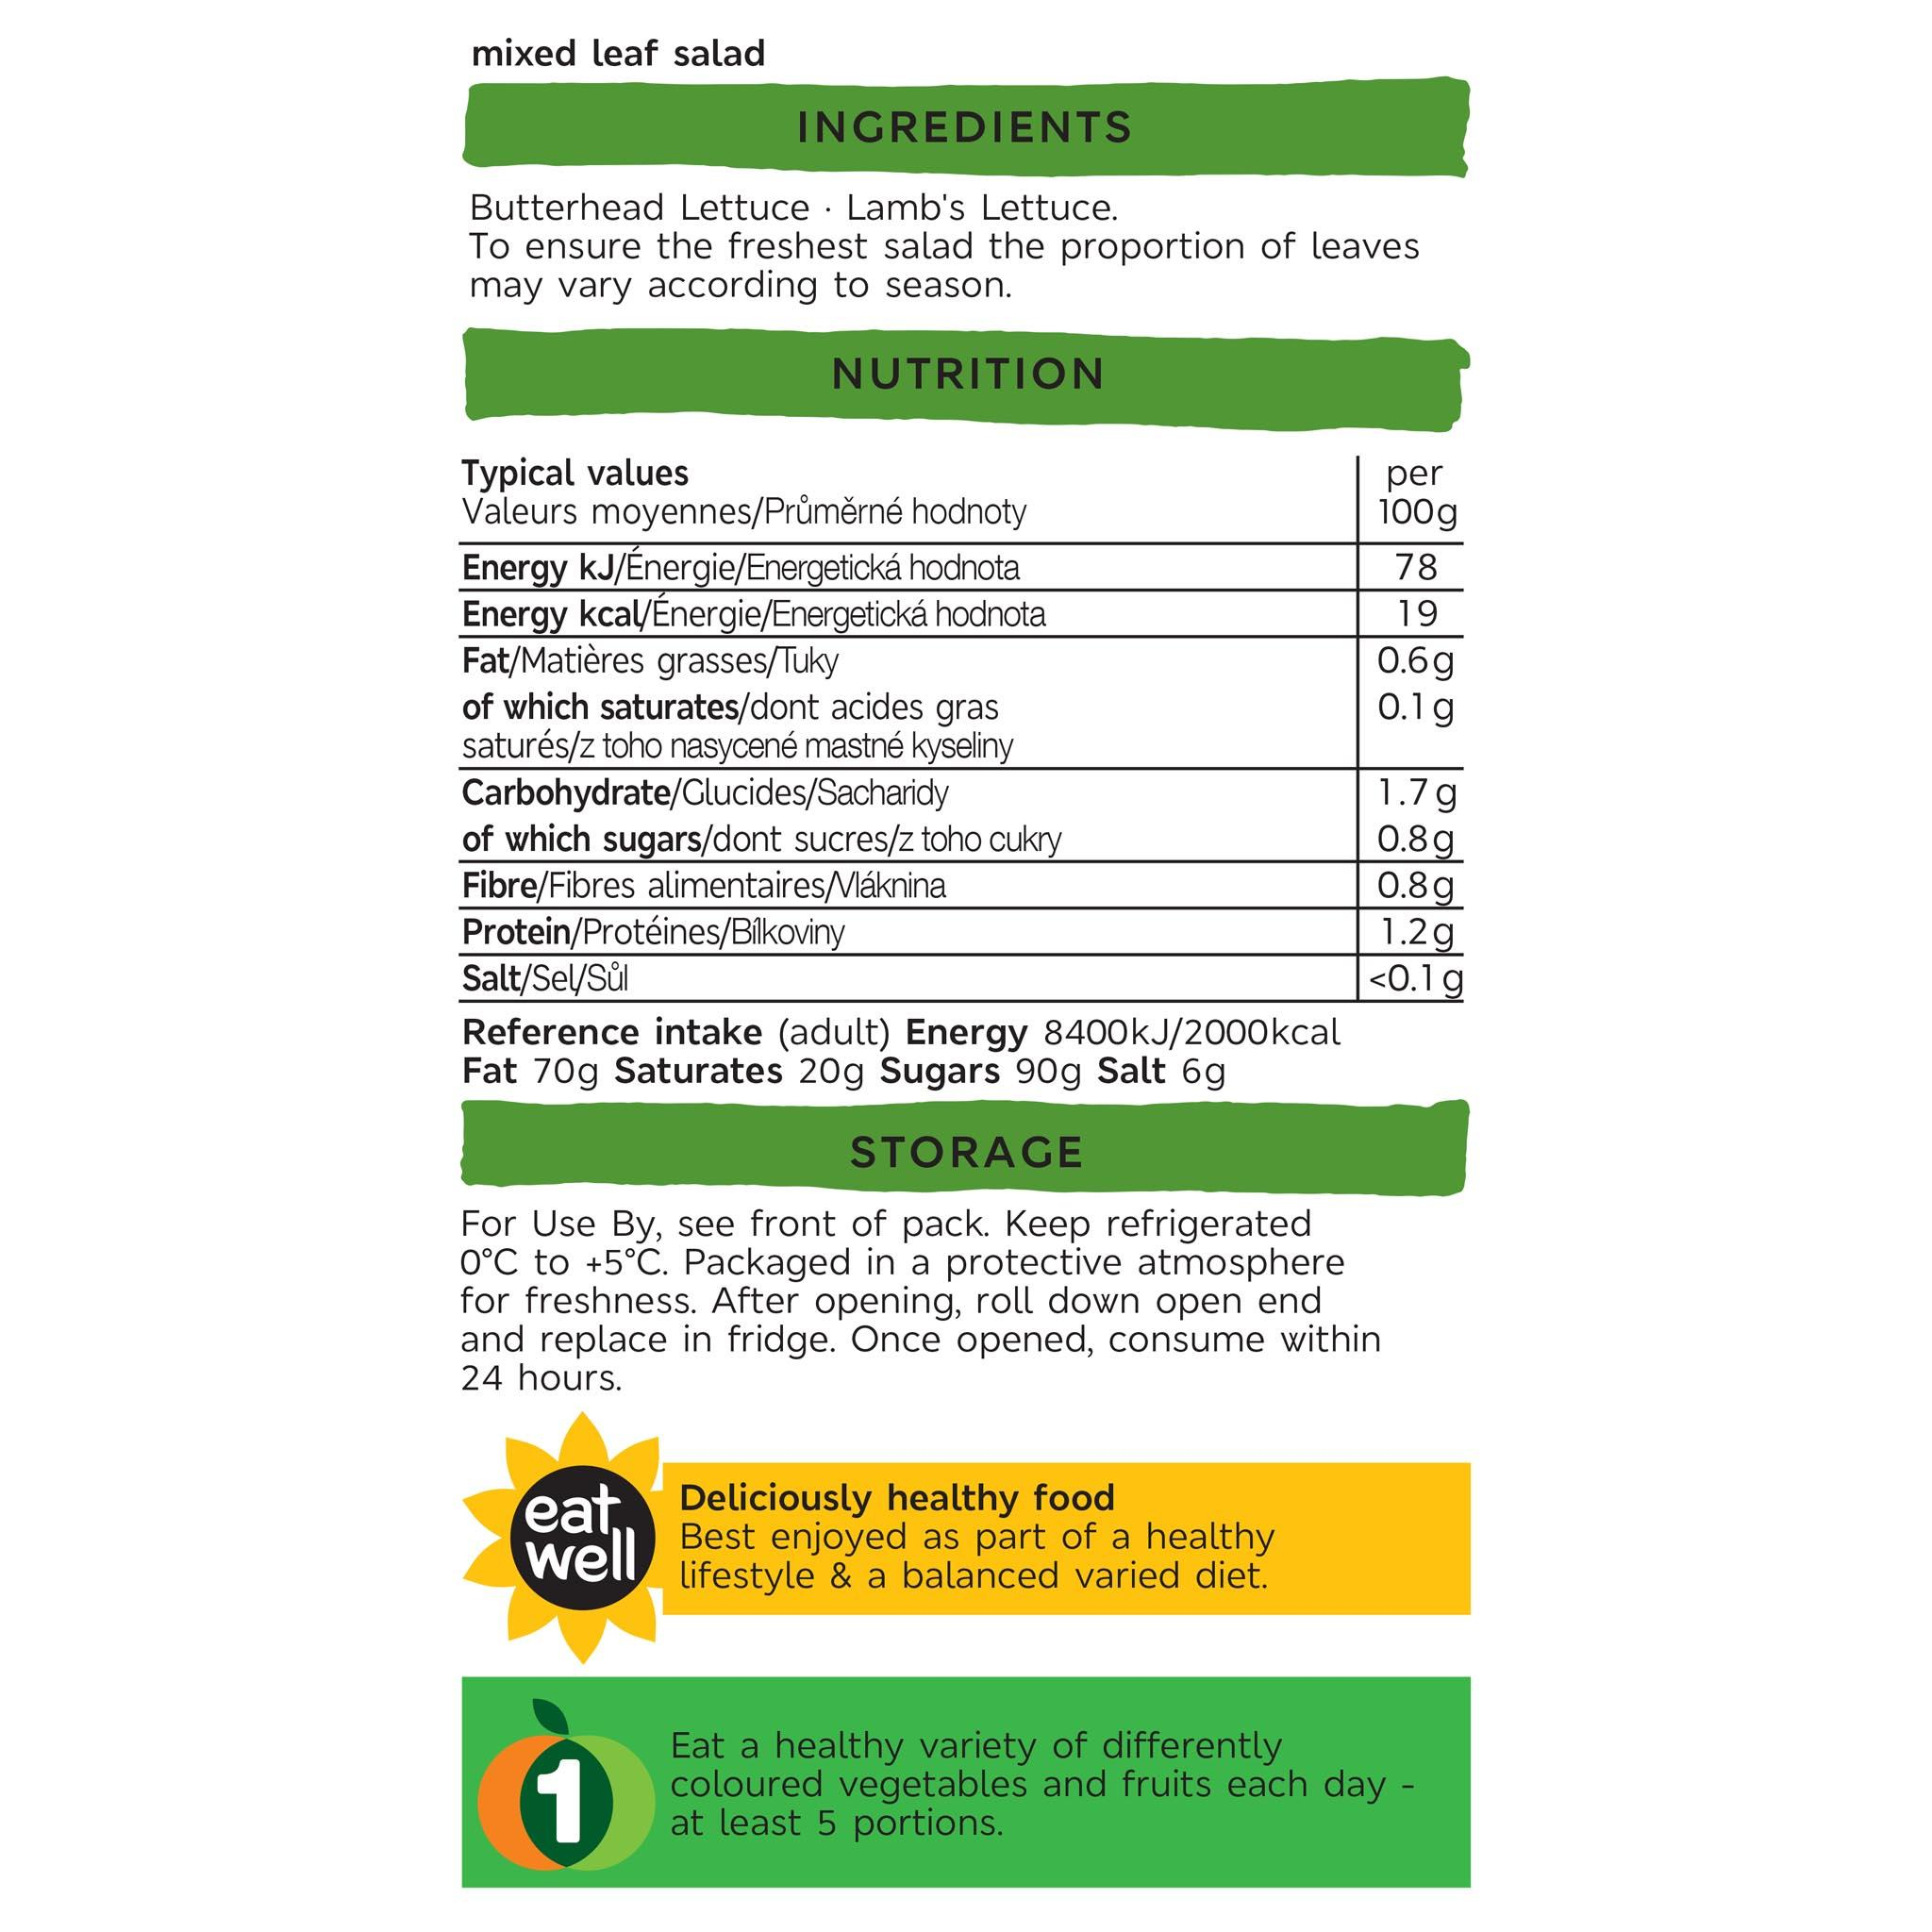 Rosa Verde Salad 120g Label